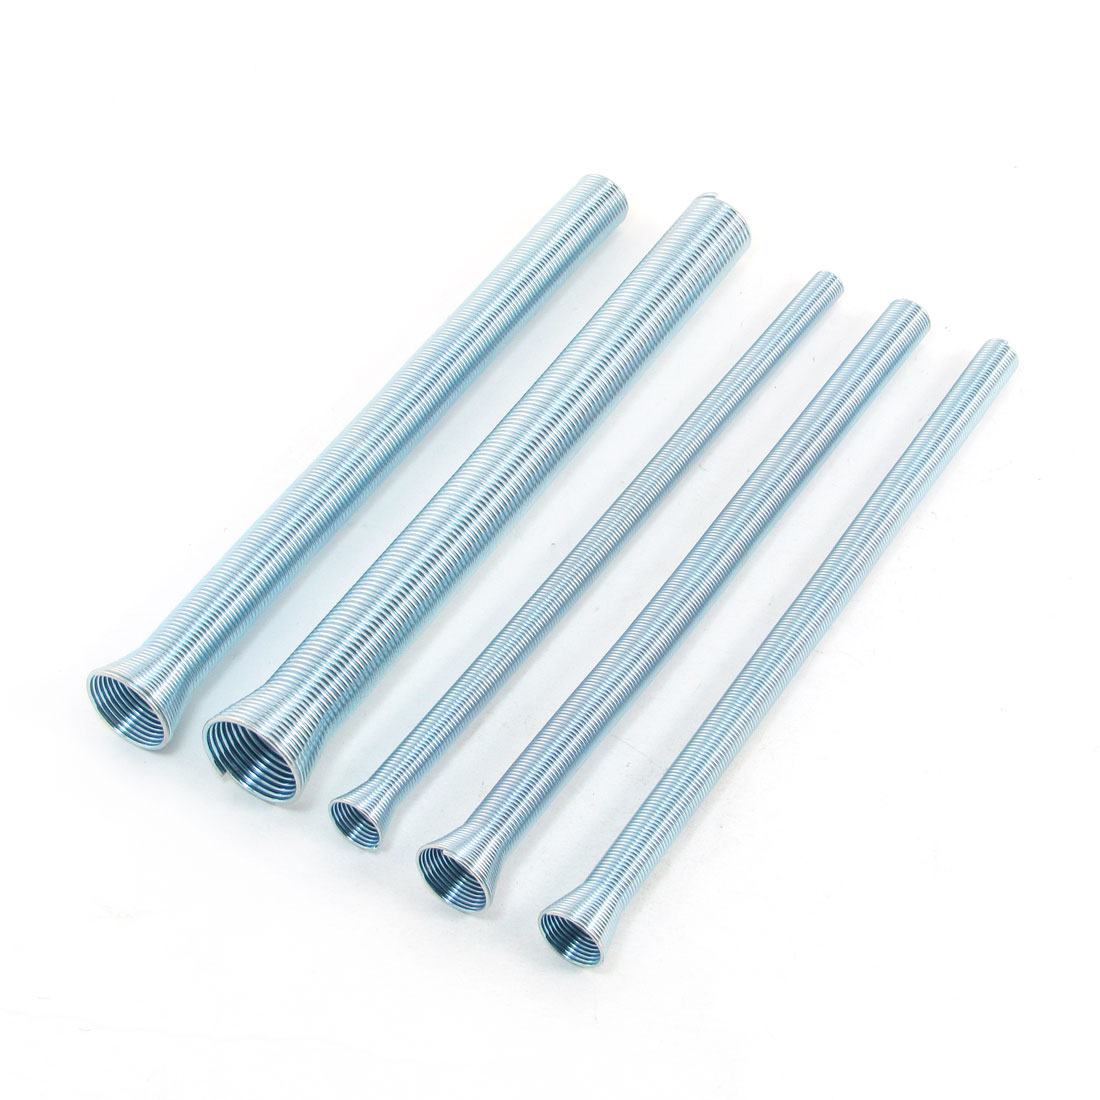 Zinc Plated Steel Wire Spring Tube Bender Kits Light Blue 5 Pcs